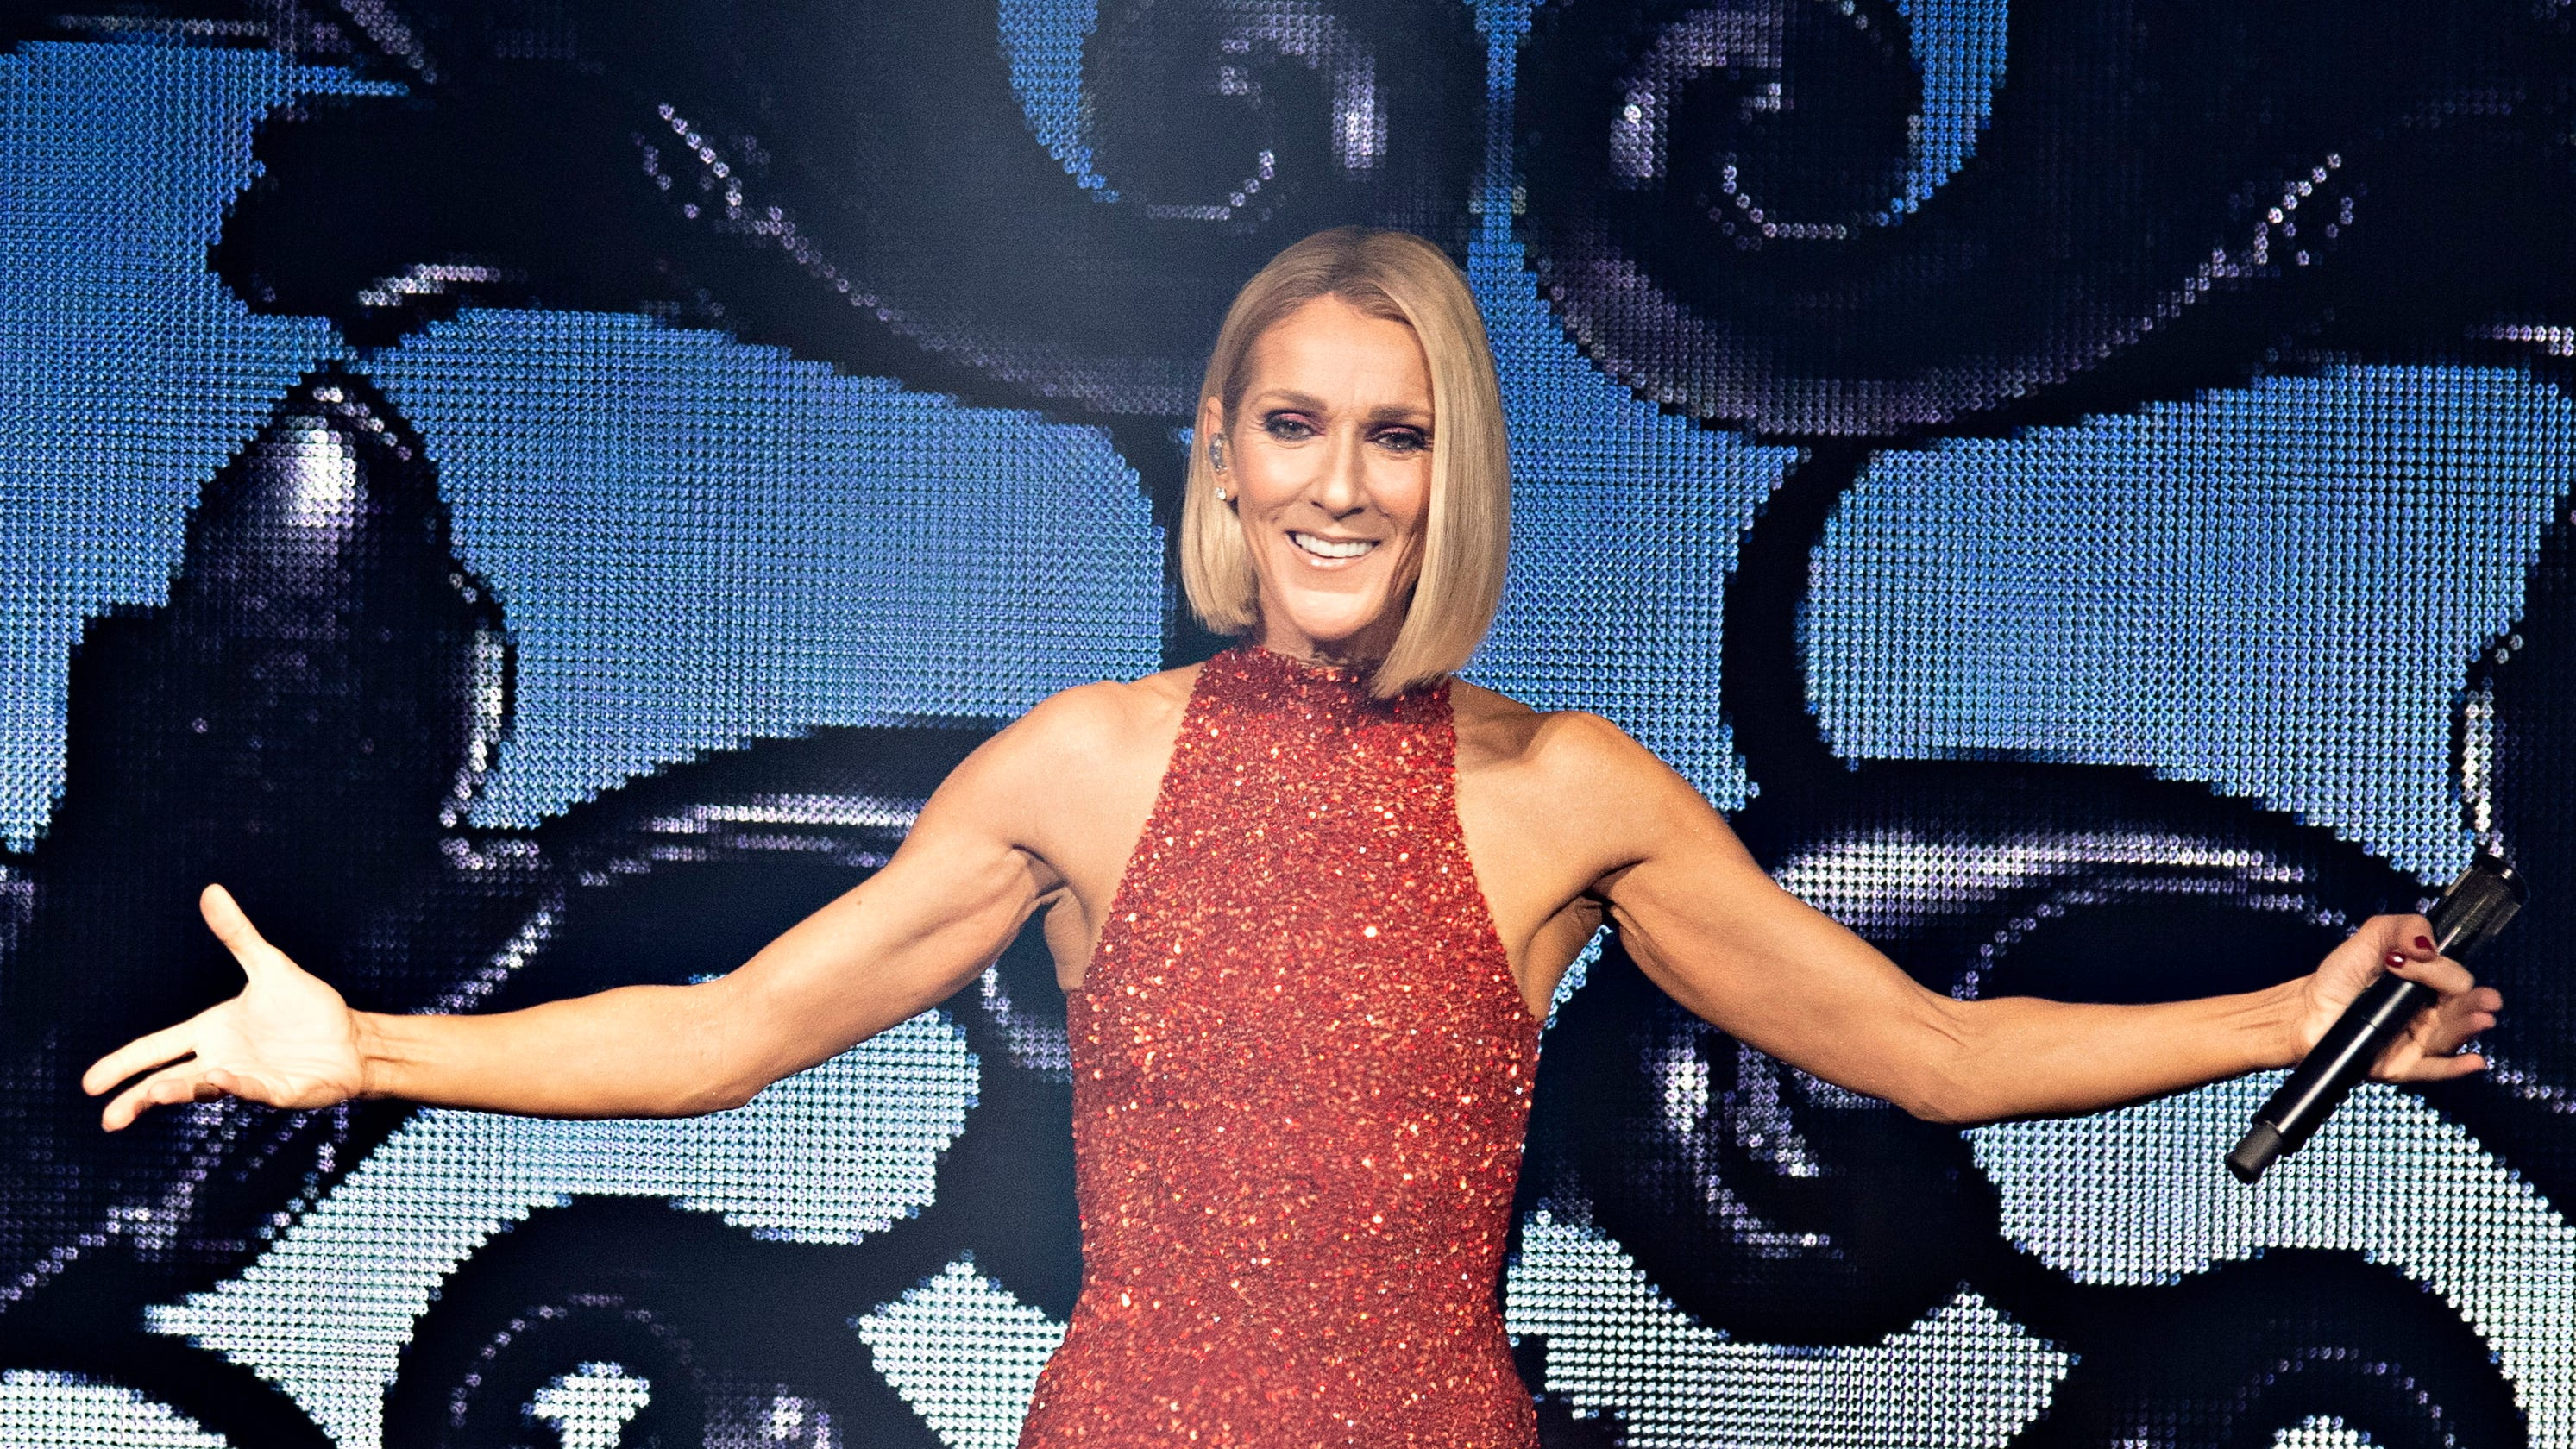 Céline Dion hits back at body-shamers who say she's too thin: 'You can't please everybody'